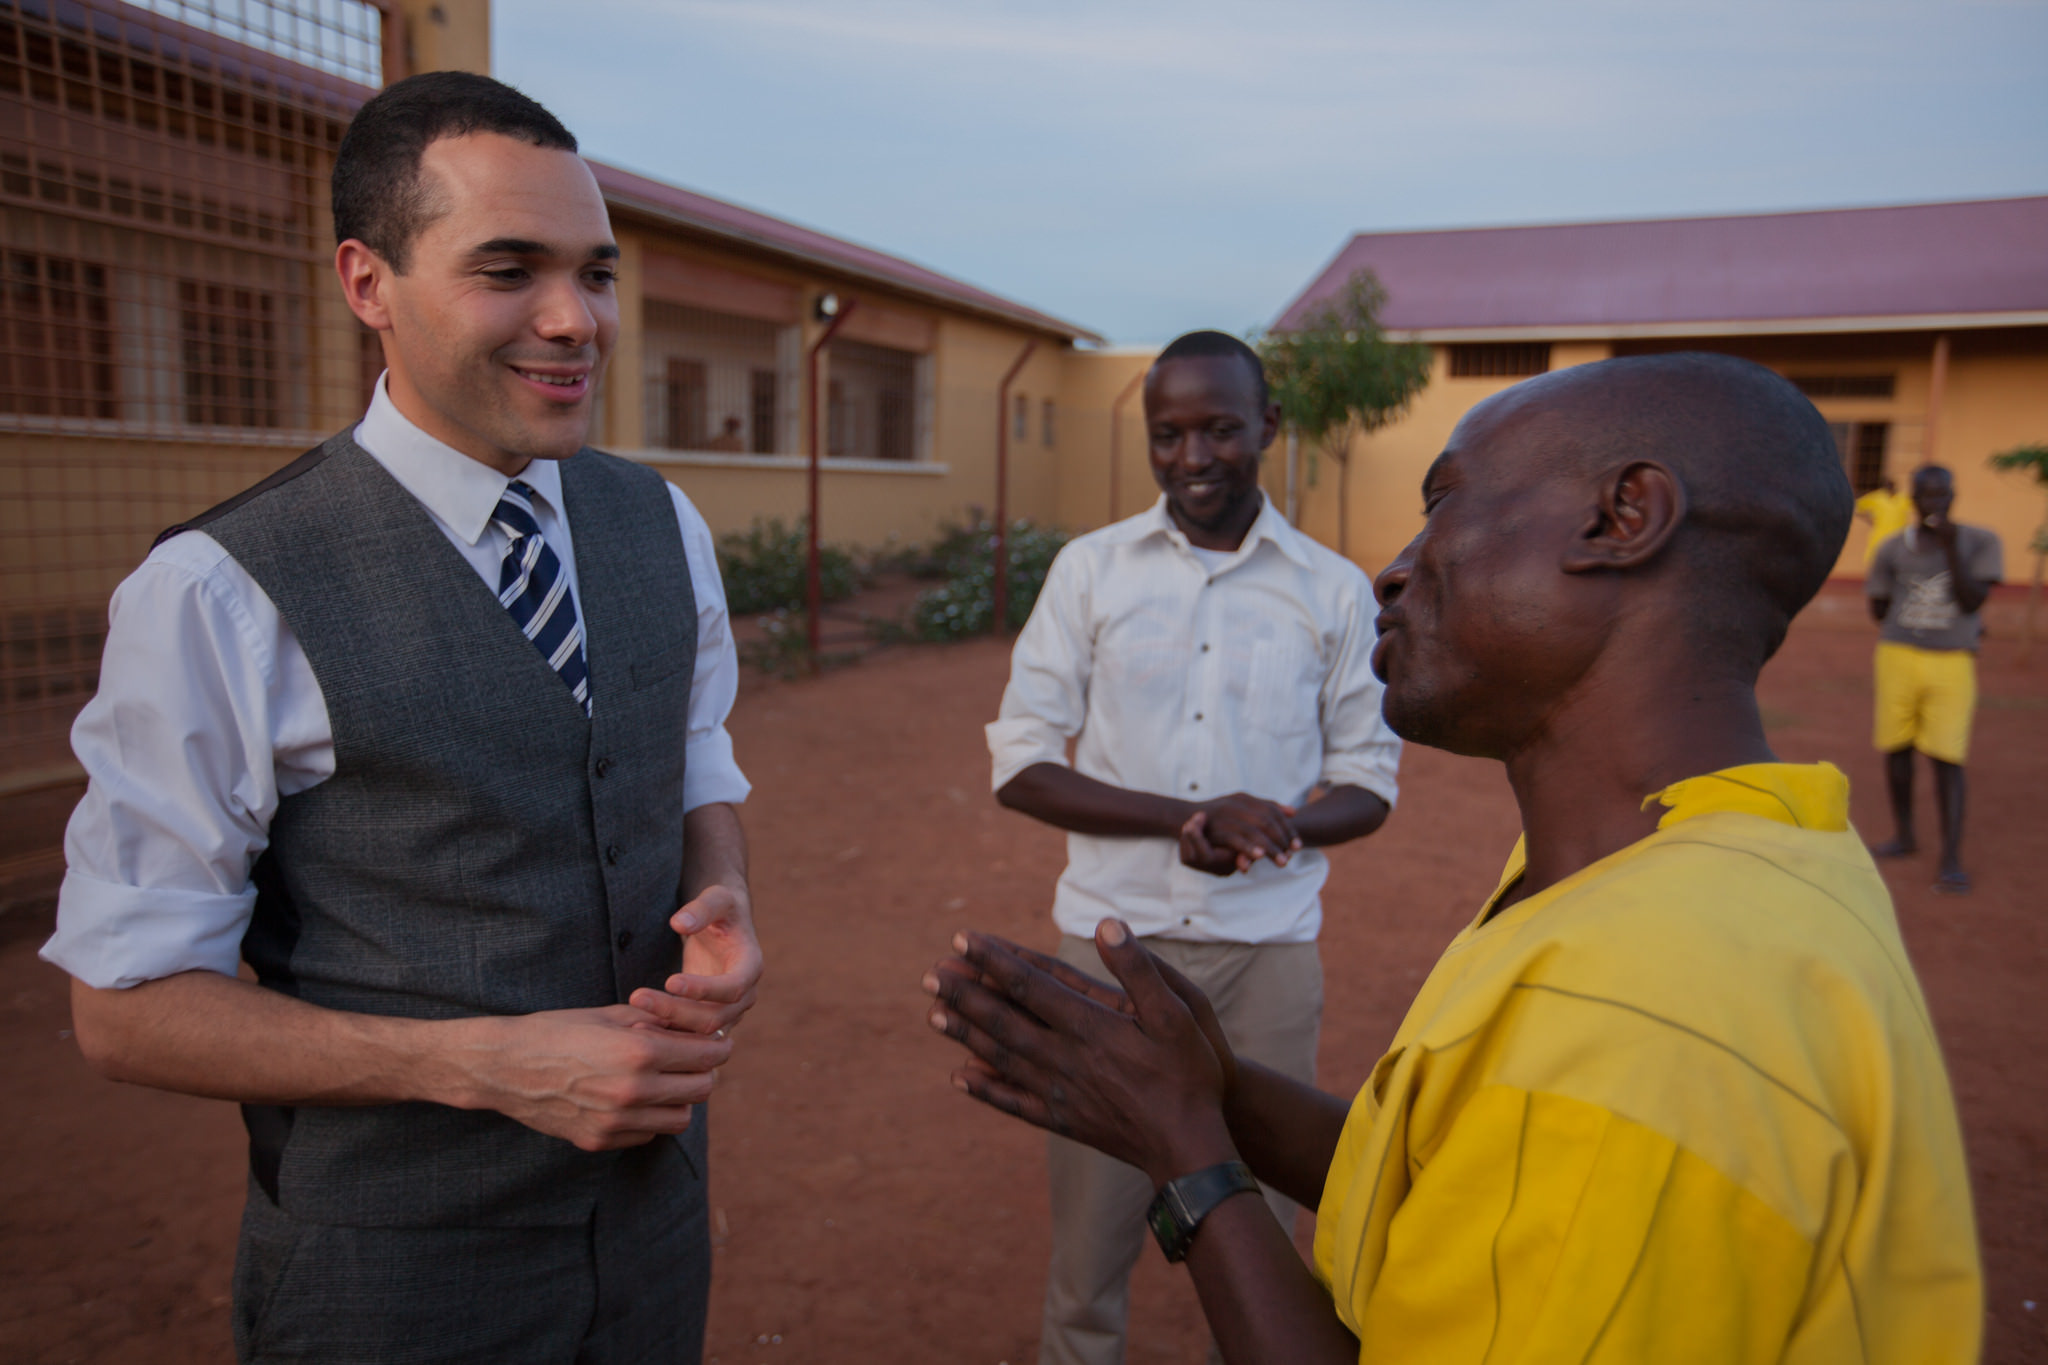 APP WORKS WITH THE QUEEN'S COMMONWEALTH TRUST - Alexander McLean shares his hopes and aspirations on the BBC Today Programme with special guest editor Prince Harry of a new generation of commonwealth changemakers who uphold the rule of law and ensure the most vulnerable people have fair representation in court. Read the full essay!